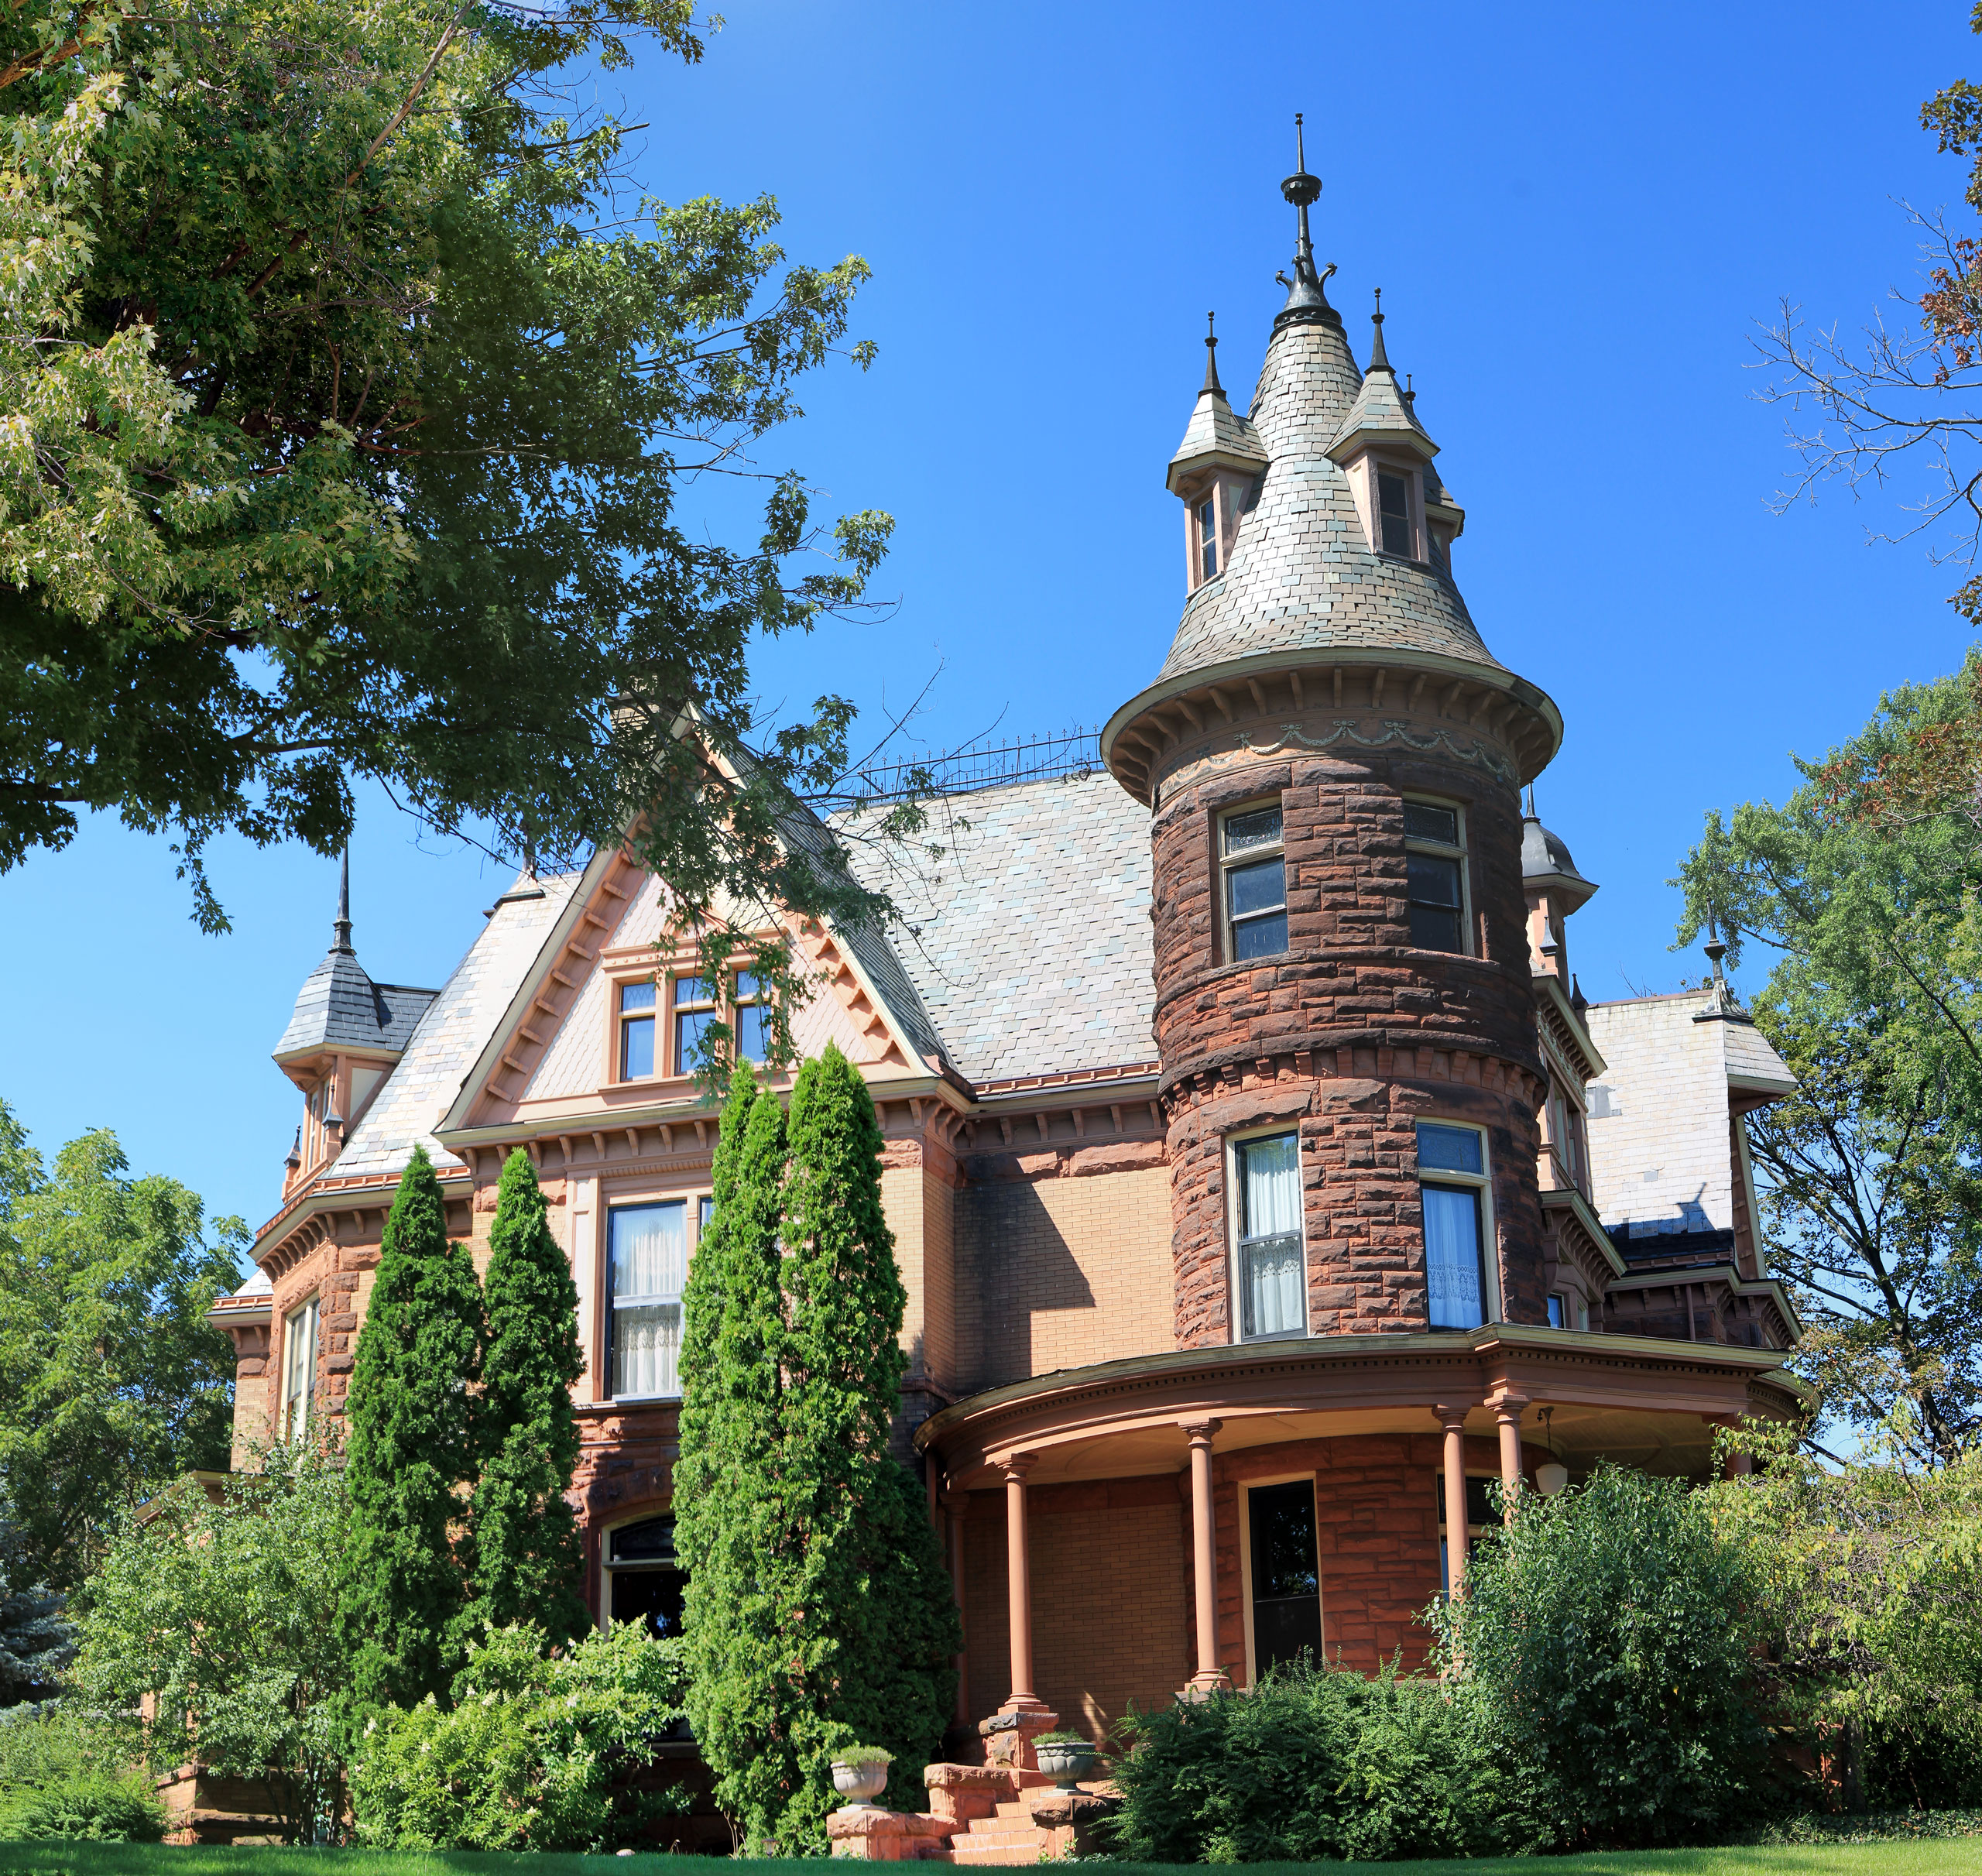 Ten Most Haunted Places - The Awesome Mitten